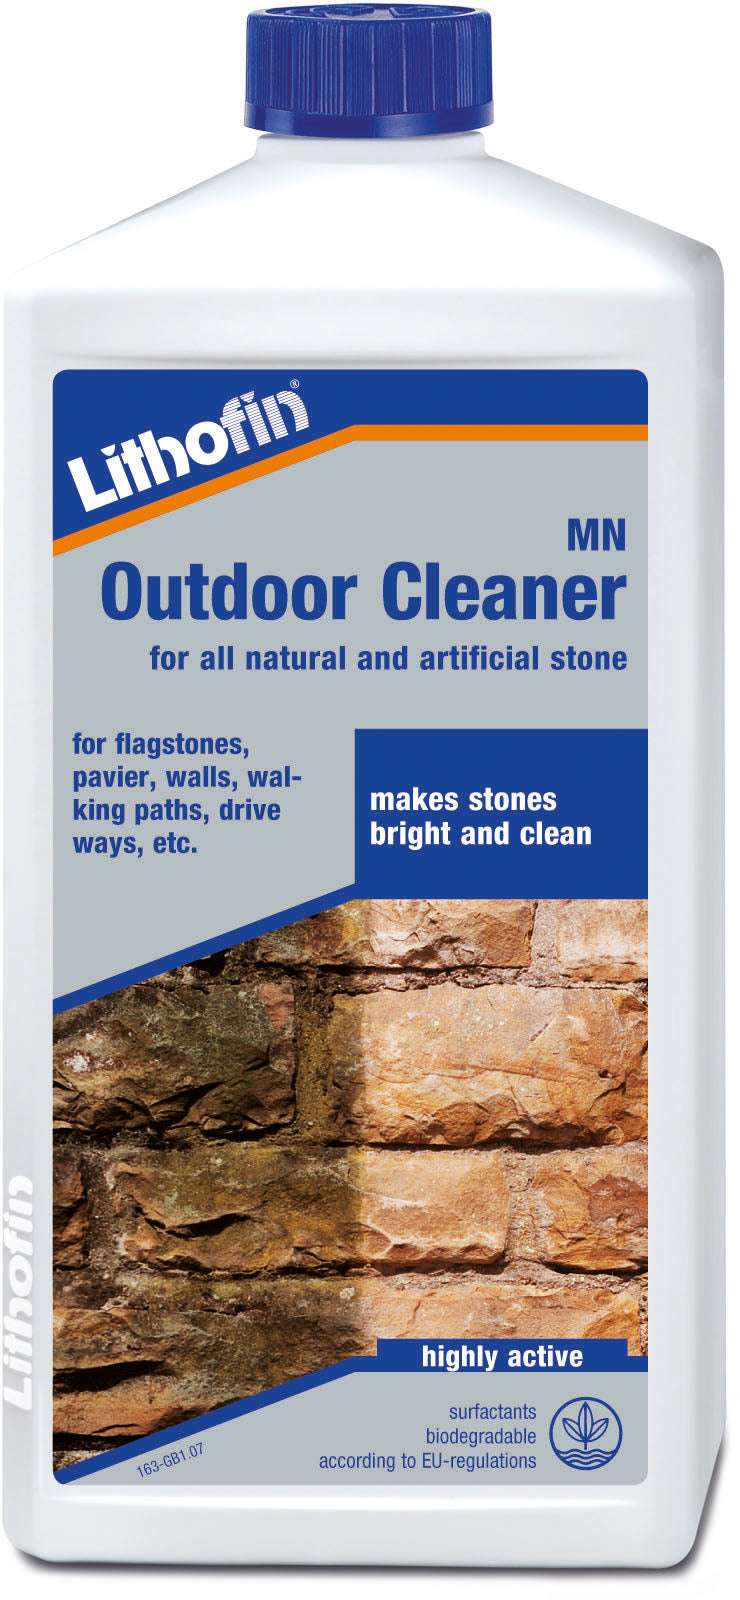 Lithofin outdoor cleaner for all natural and artificial stone